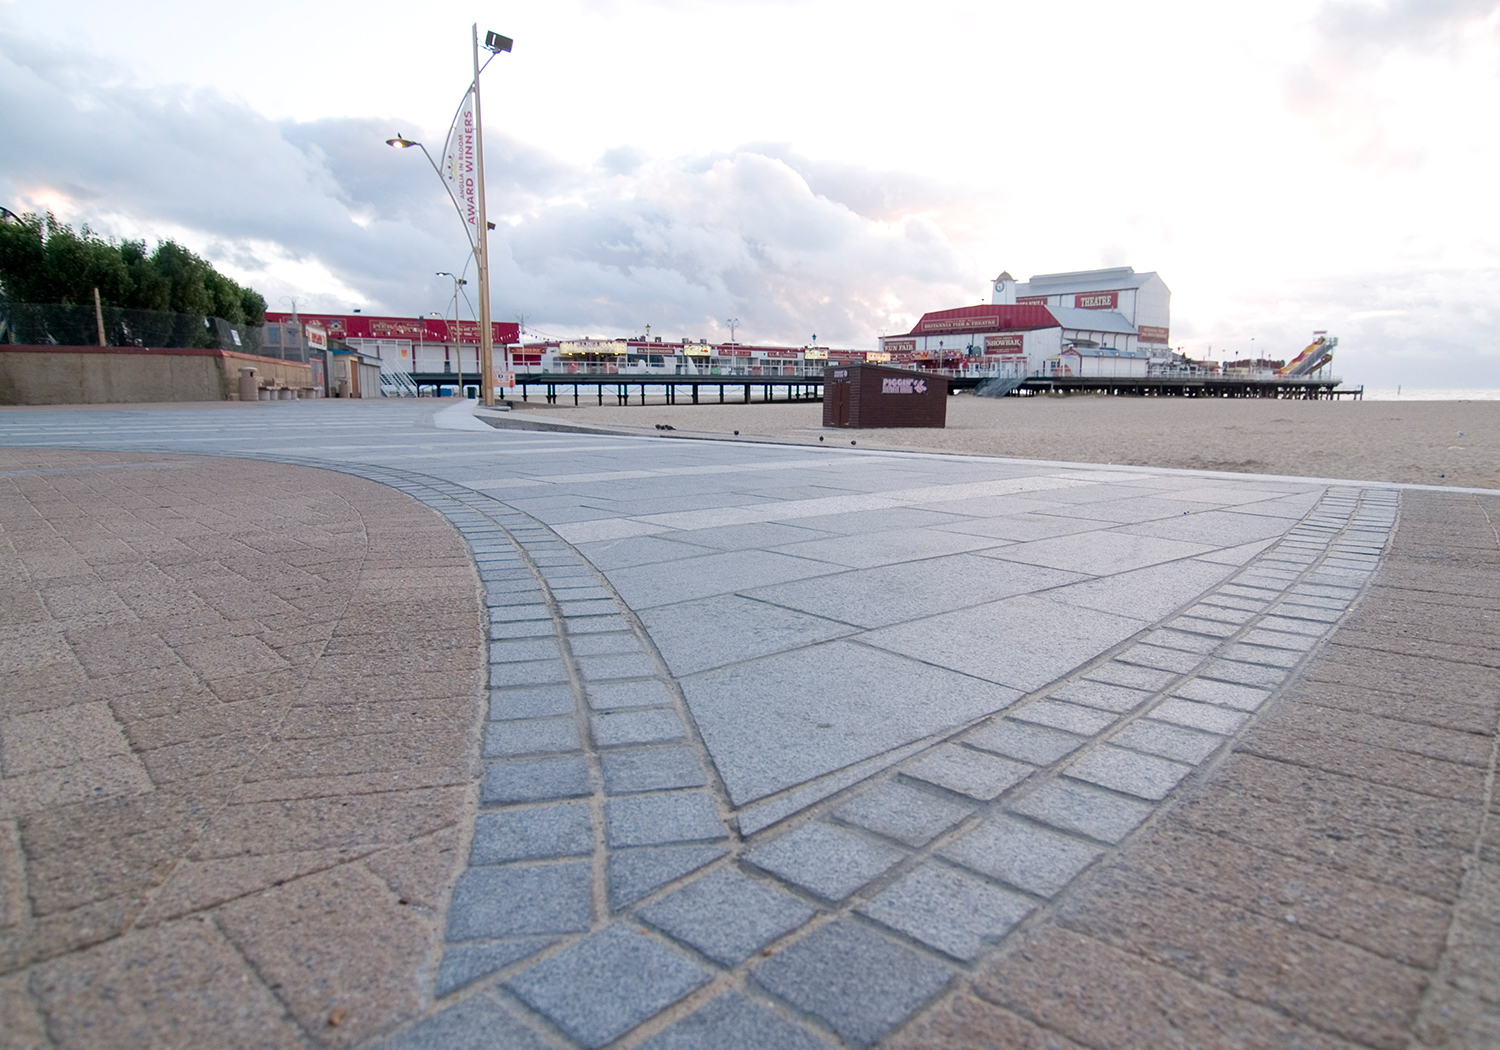 Projects-ParksPublicRealm-YarmouthEsplanade-Paving-1500x1050